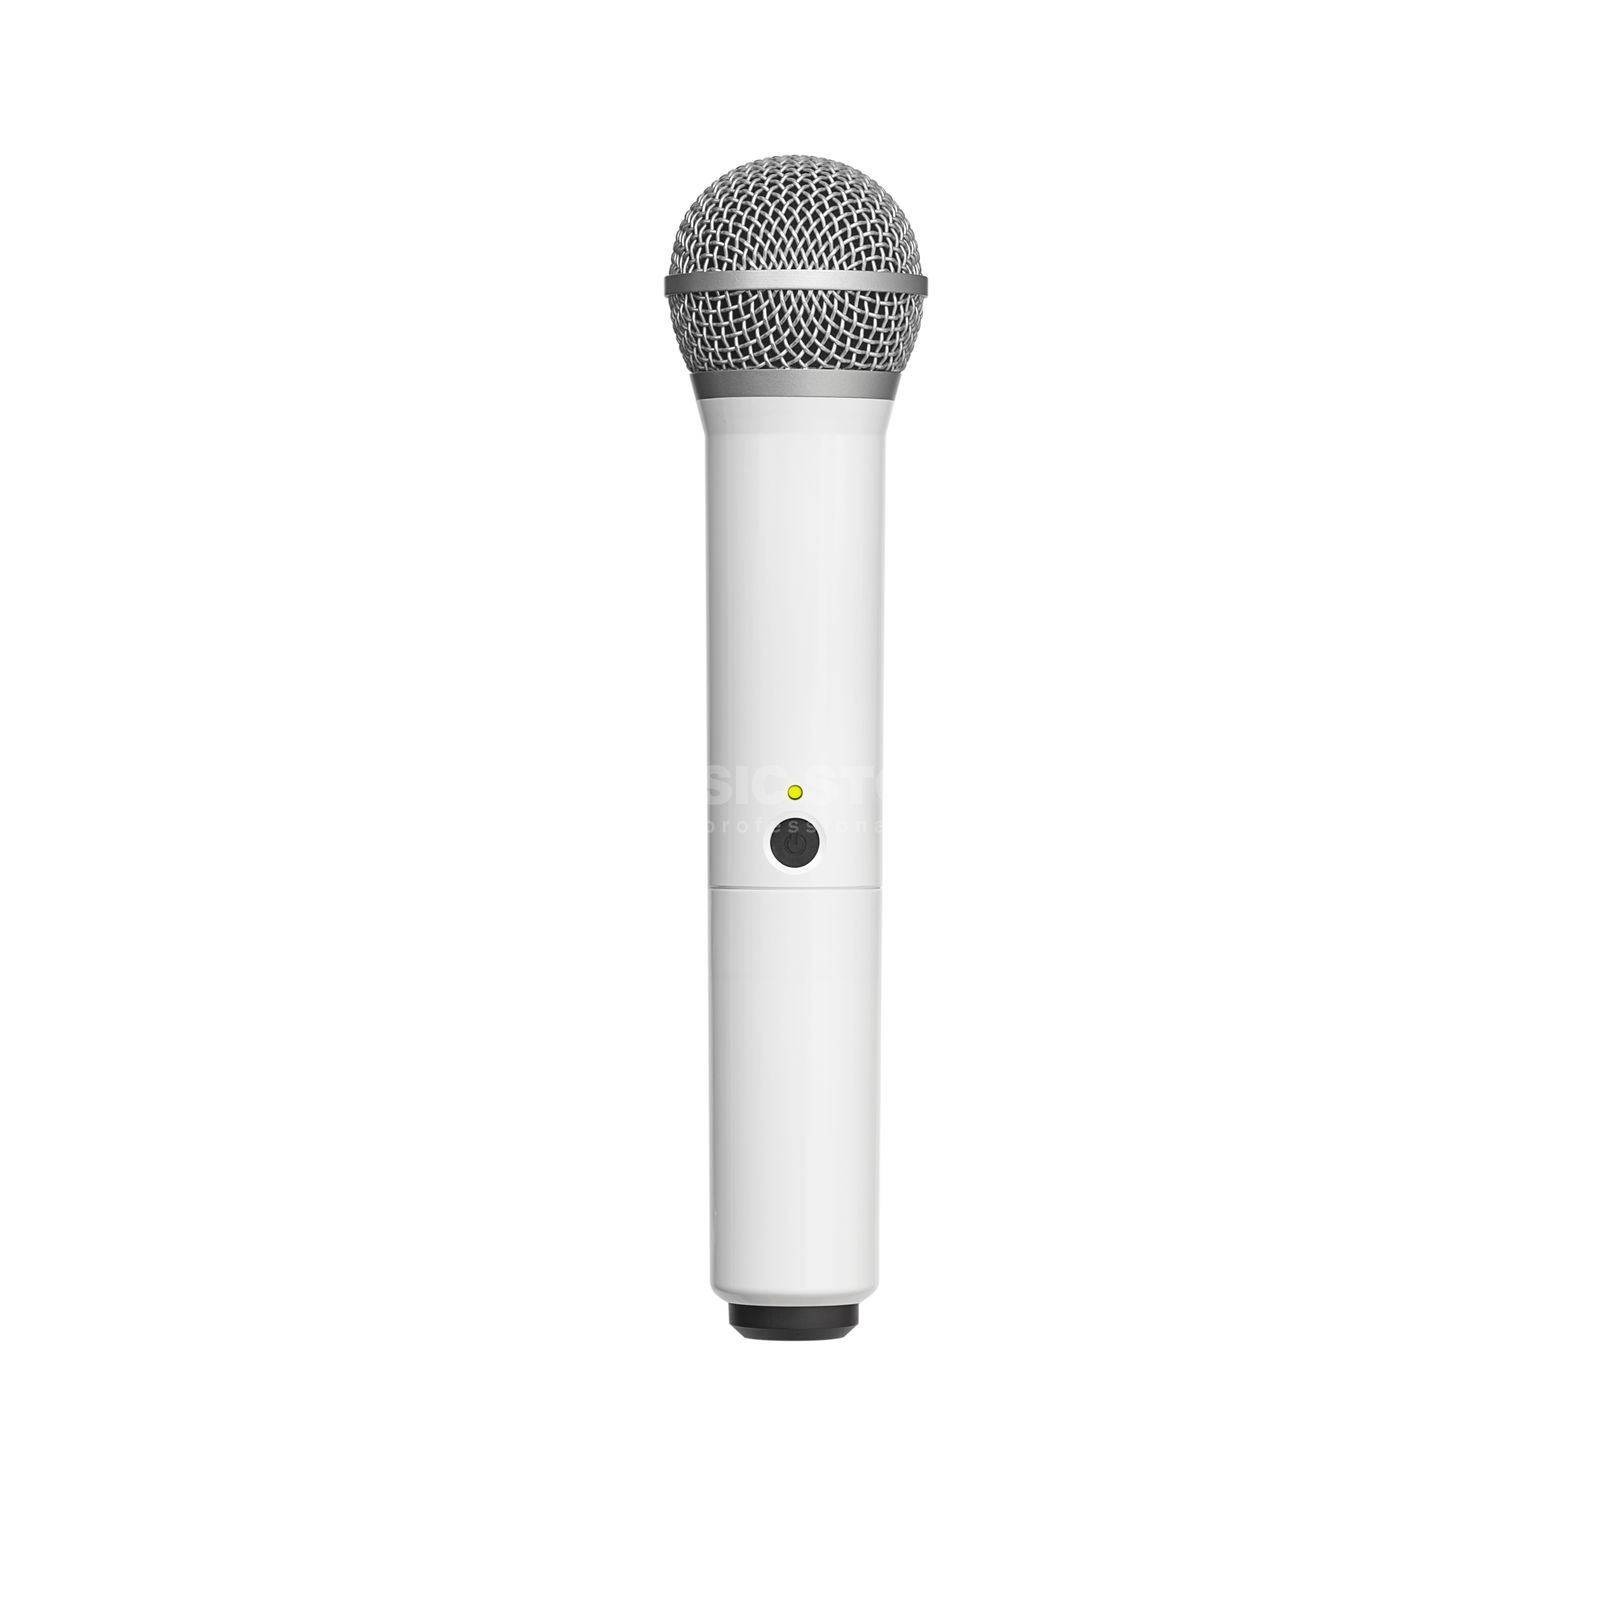 Shure WA712 Colour Housing white for BLX2/PG58 Handheld Transmitter Produktbillede